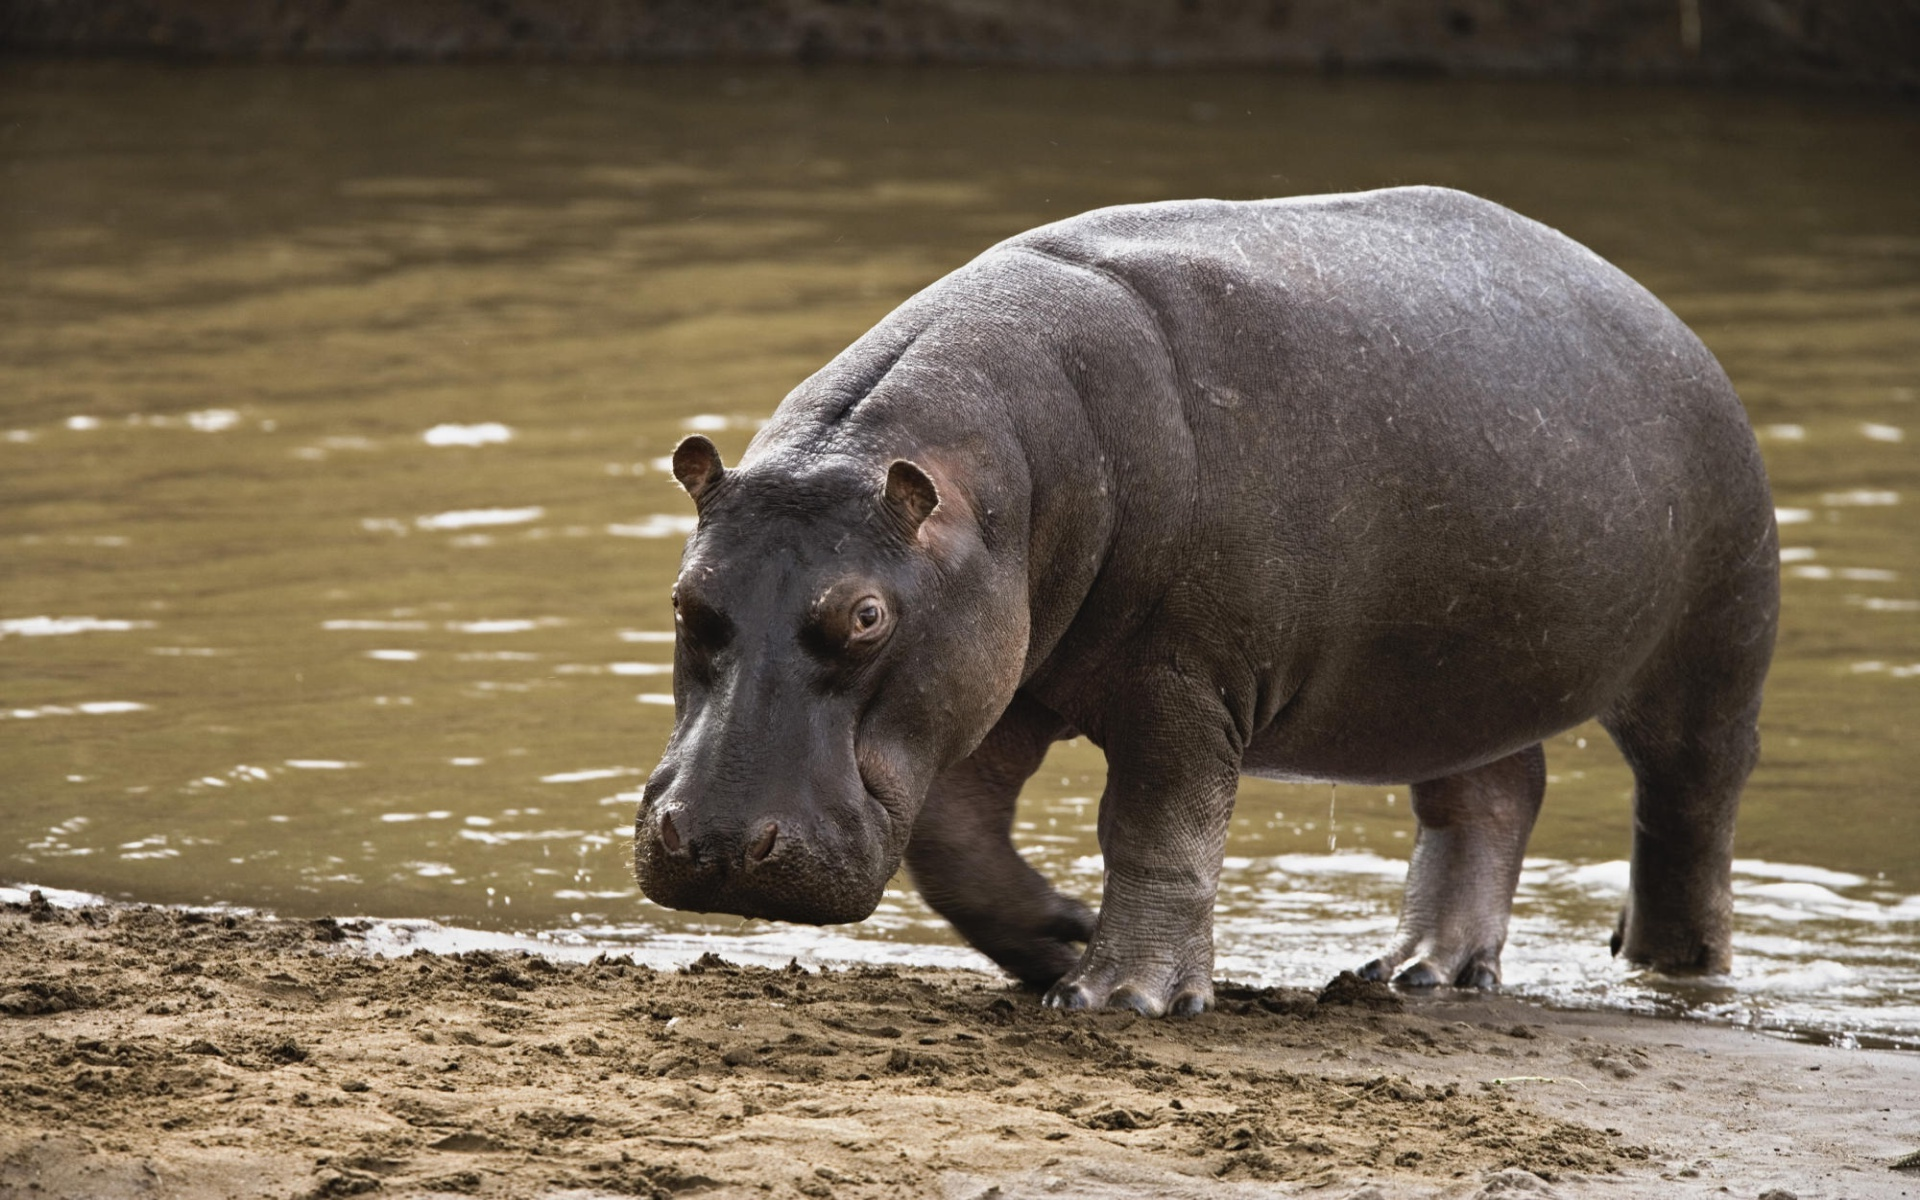 Hippopotamus After a Swim in the Water 775.79 Kb